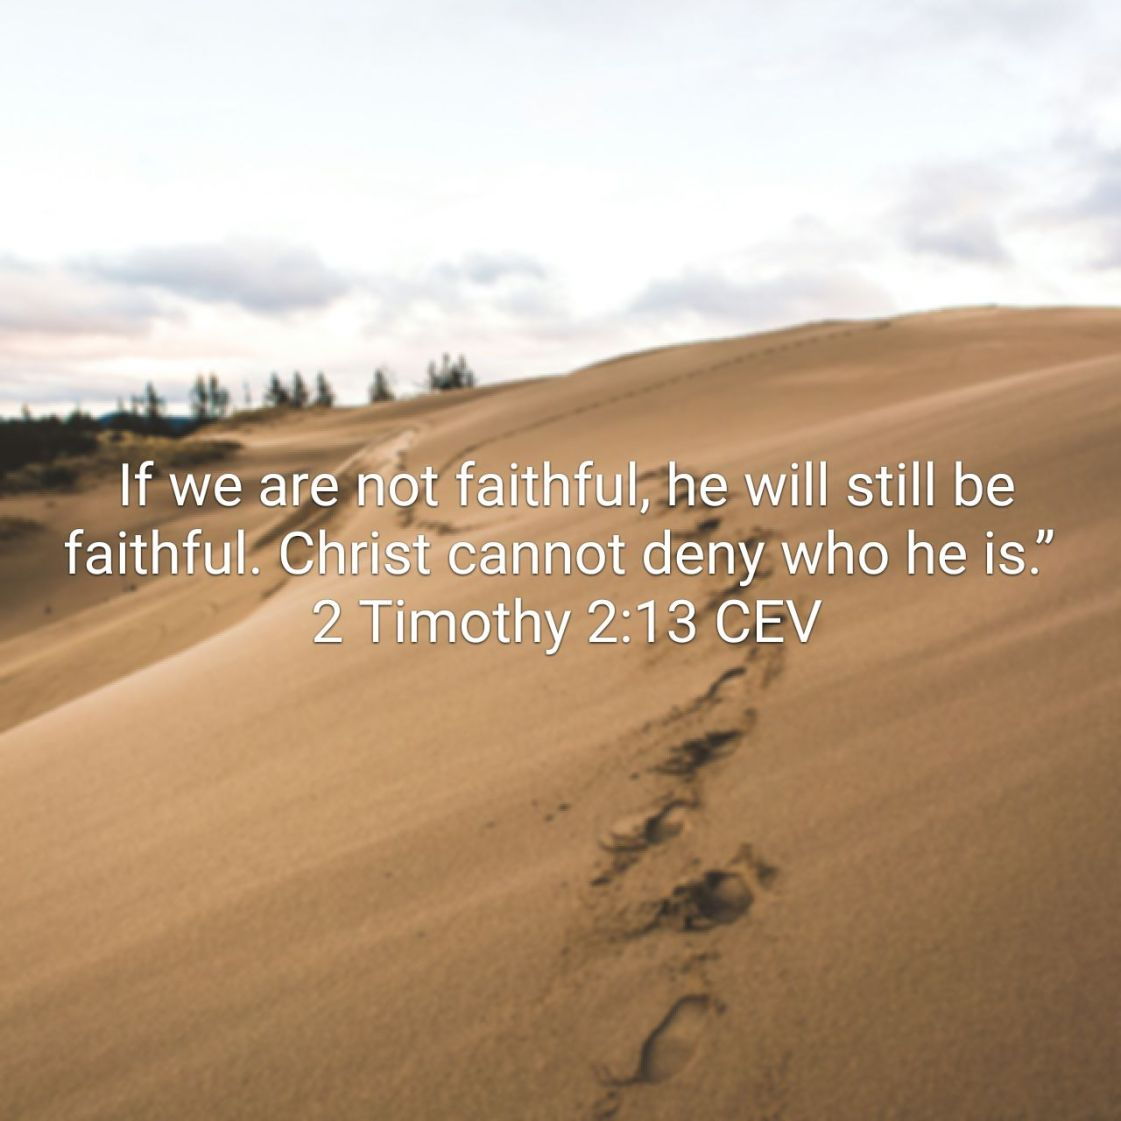 If we are not faithful, he will still be faithful. Christ cannot deny who he is.